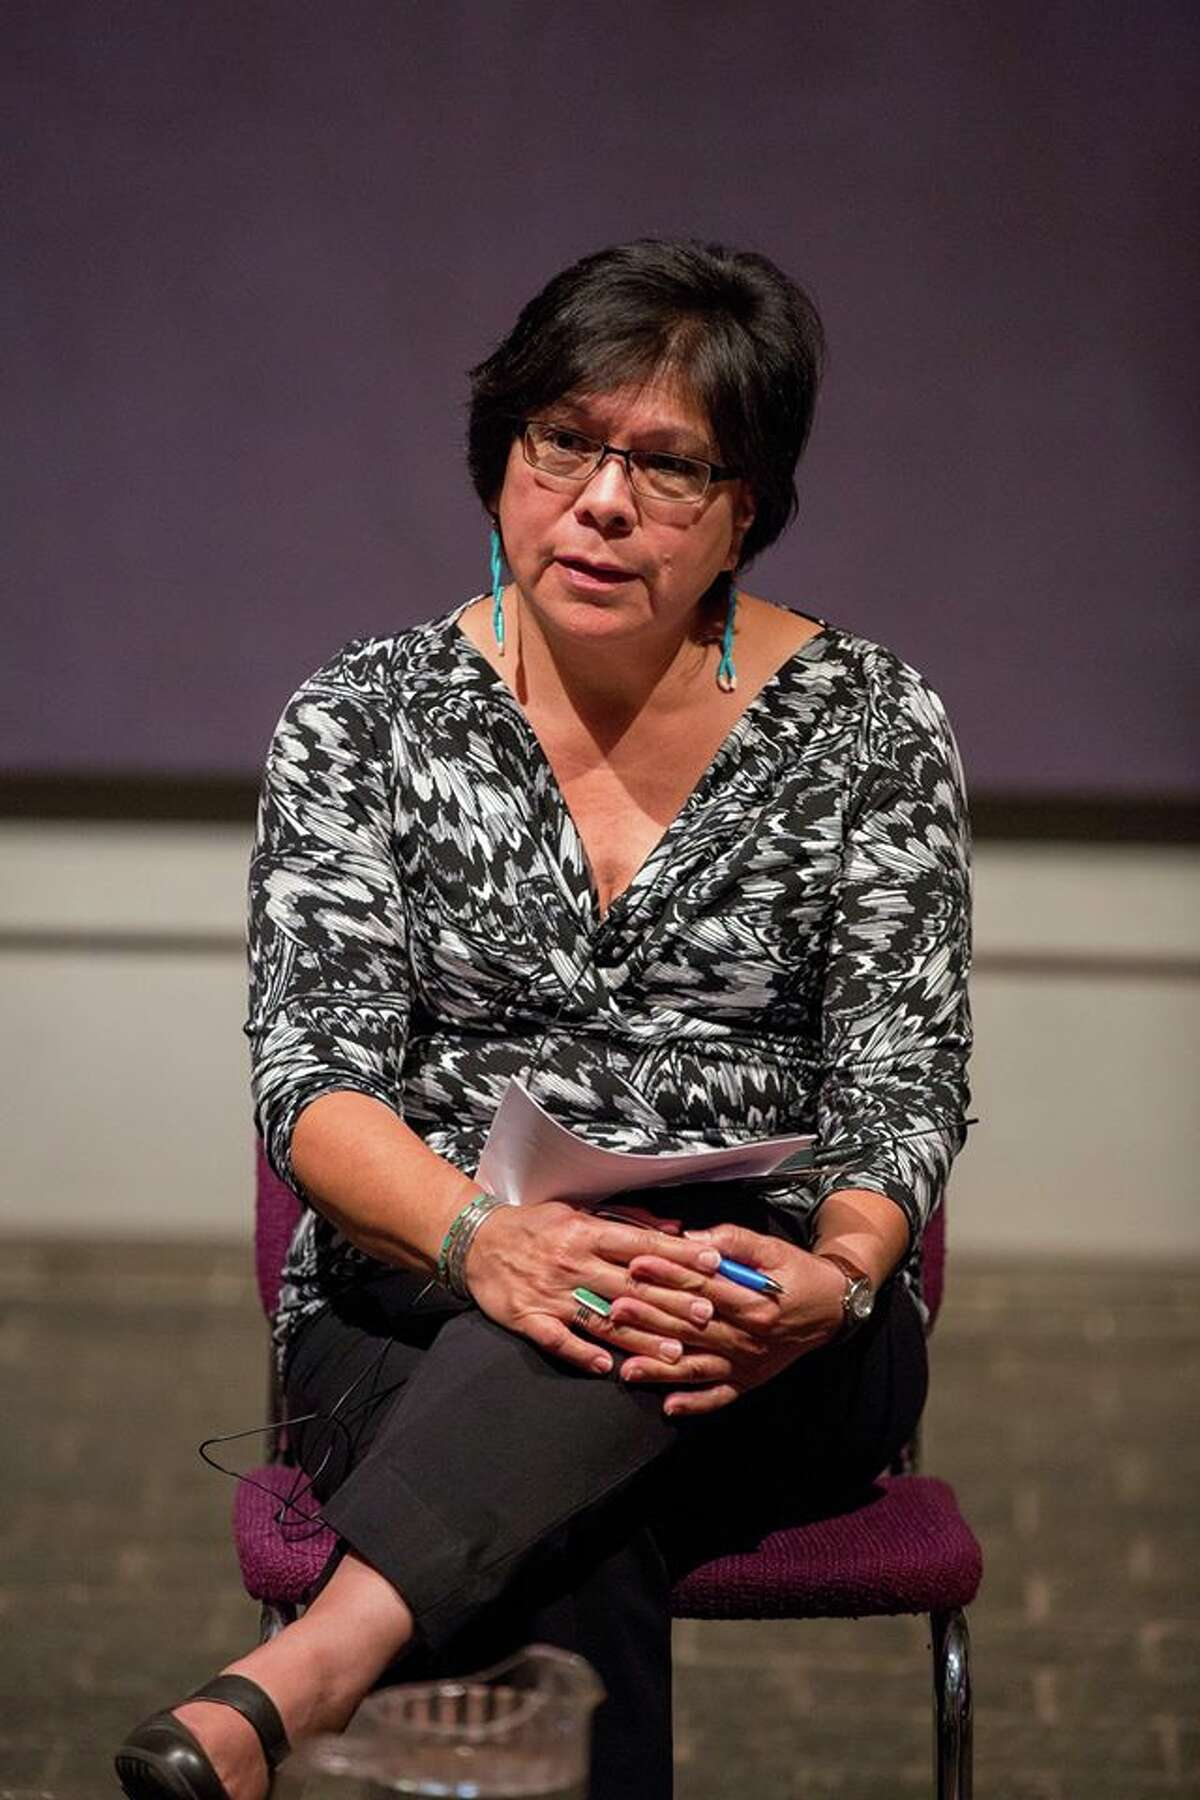 Suzanne Benally, the first Indigenous Executive Director of Cultural Survival, shares her personal spiritual journey as a Navajo and Santa Clara from New Mexico at Rothko Chapel Thursday.